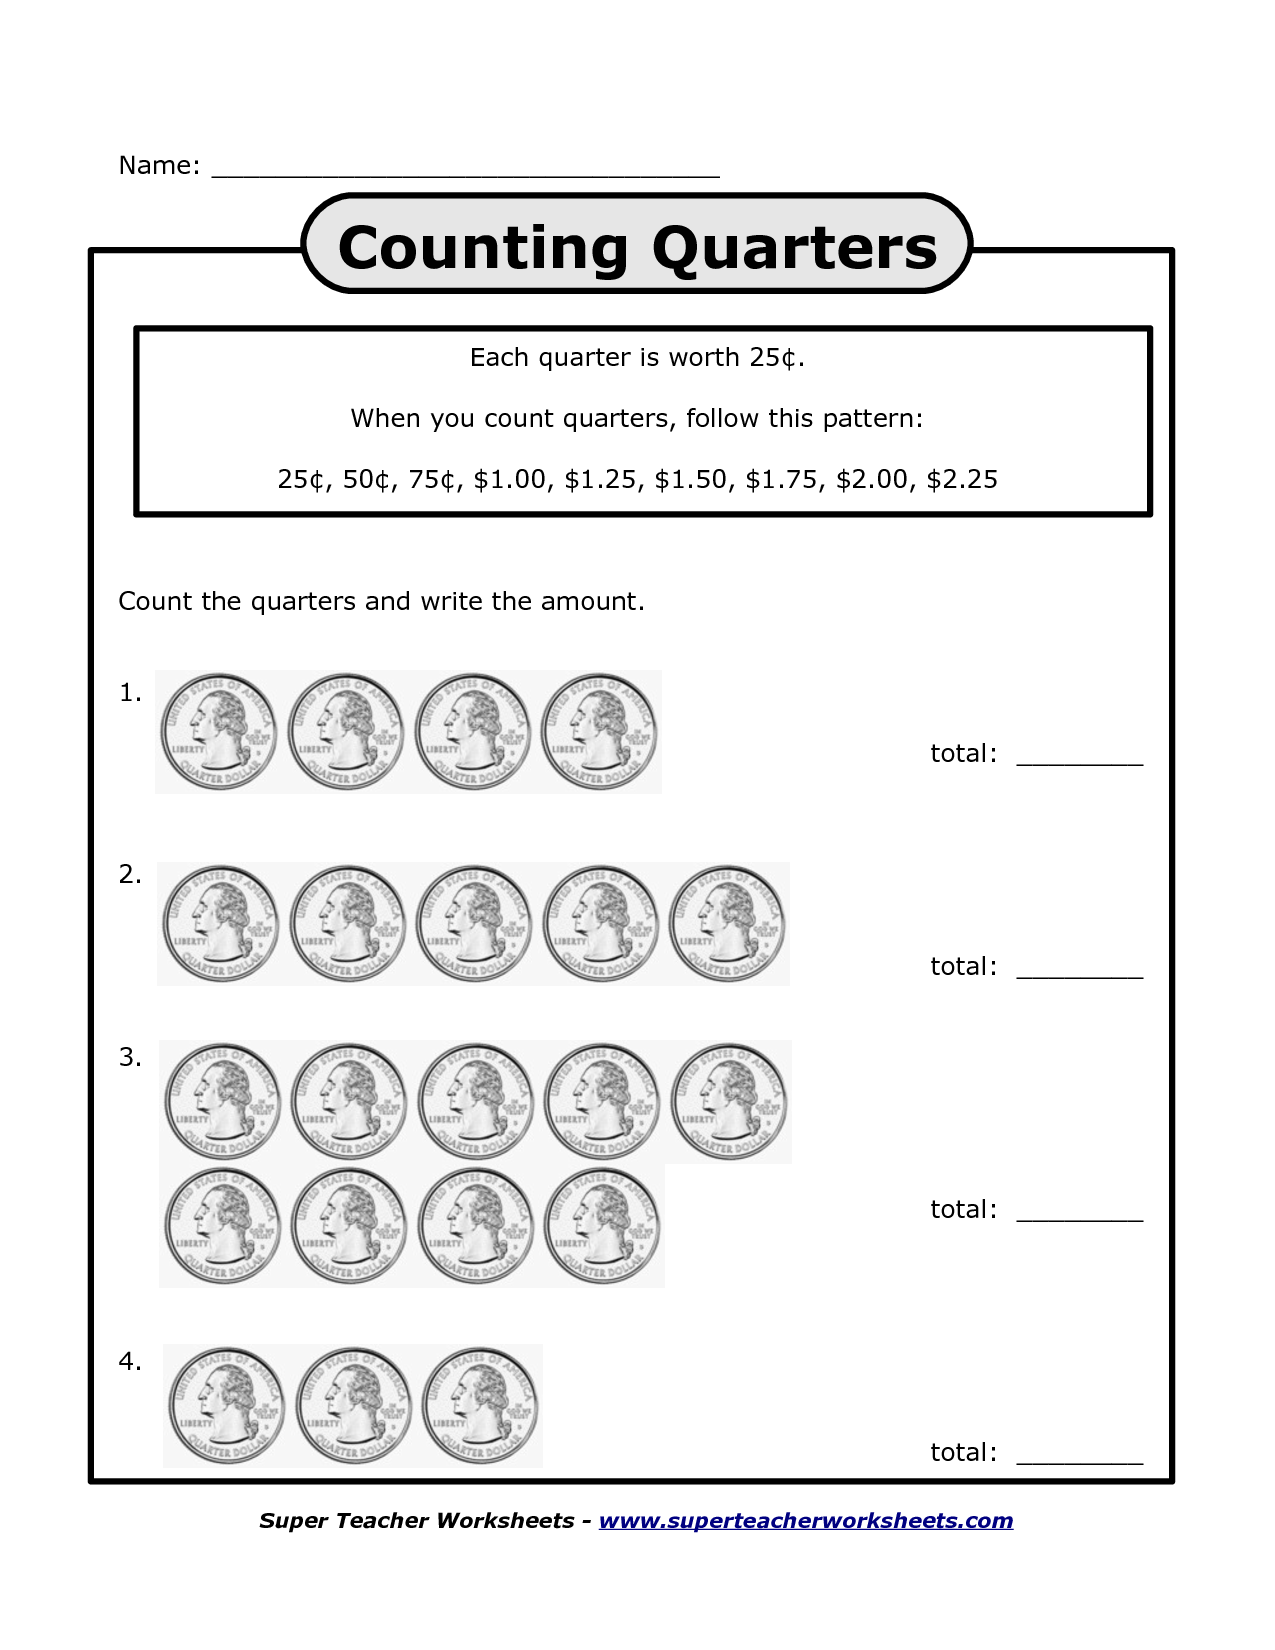 small resolution of Counting Quarters Worksheets - Bing Images   Super teacher worksheets